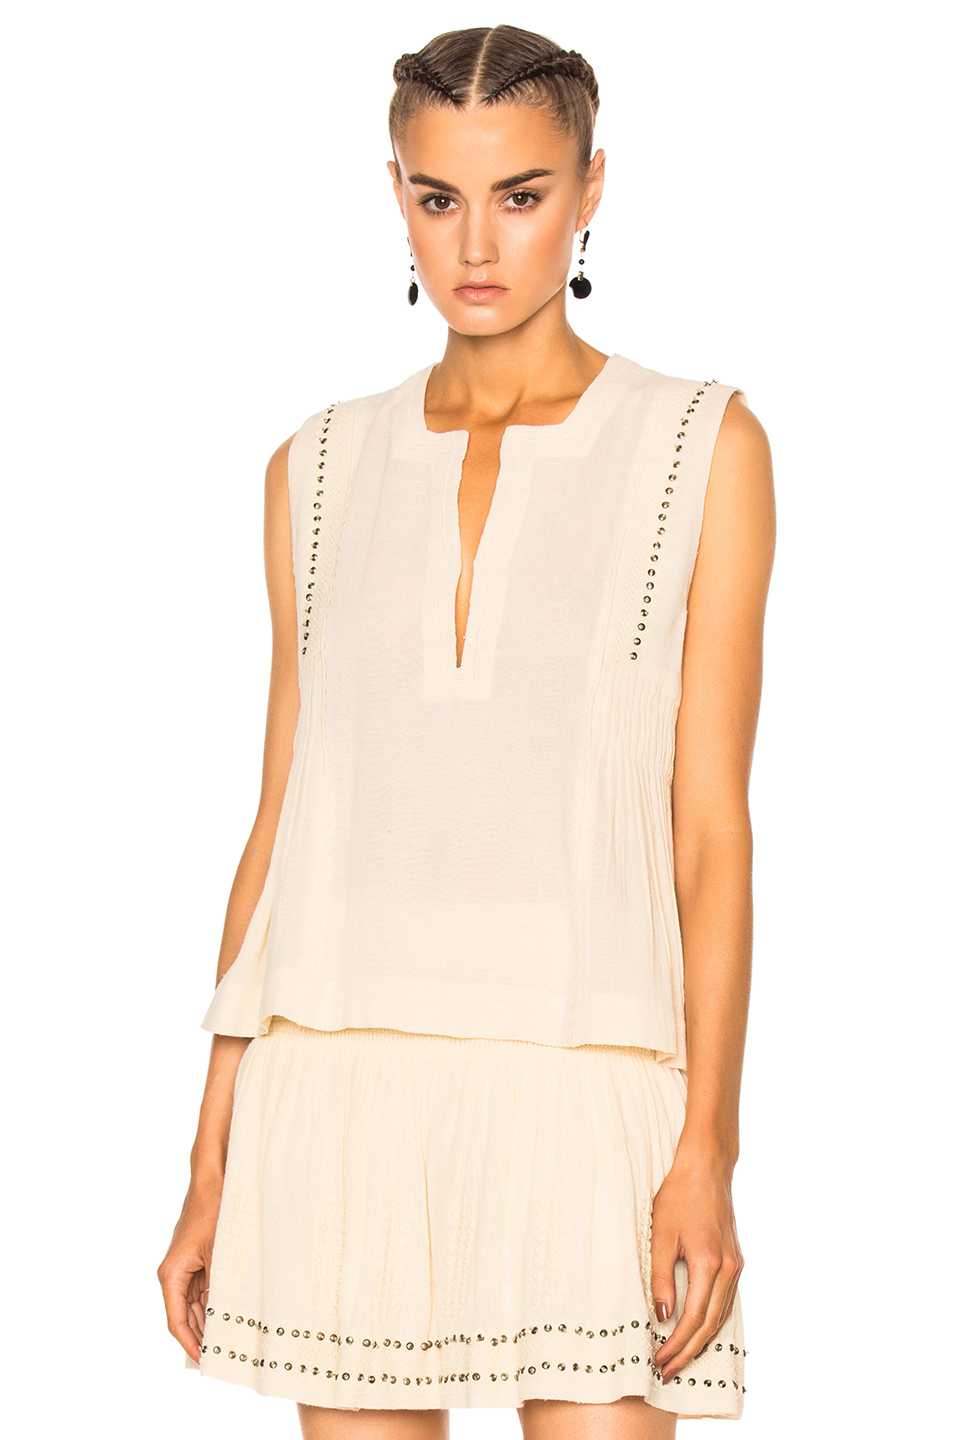 Isabel Marant Etoile Adonis Something Ethnic Top in Neutrals